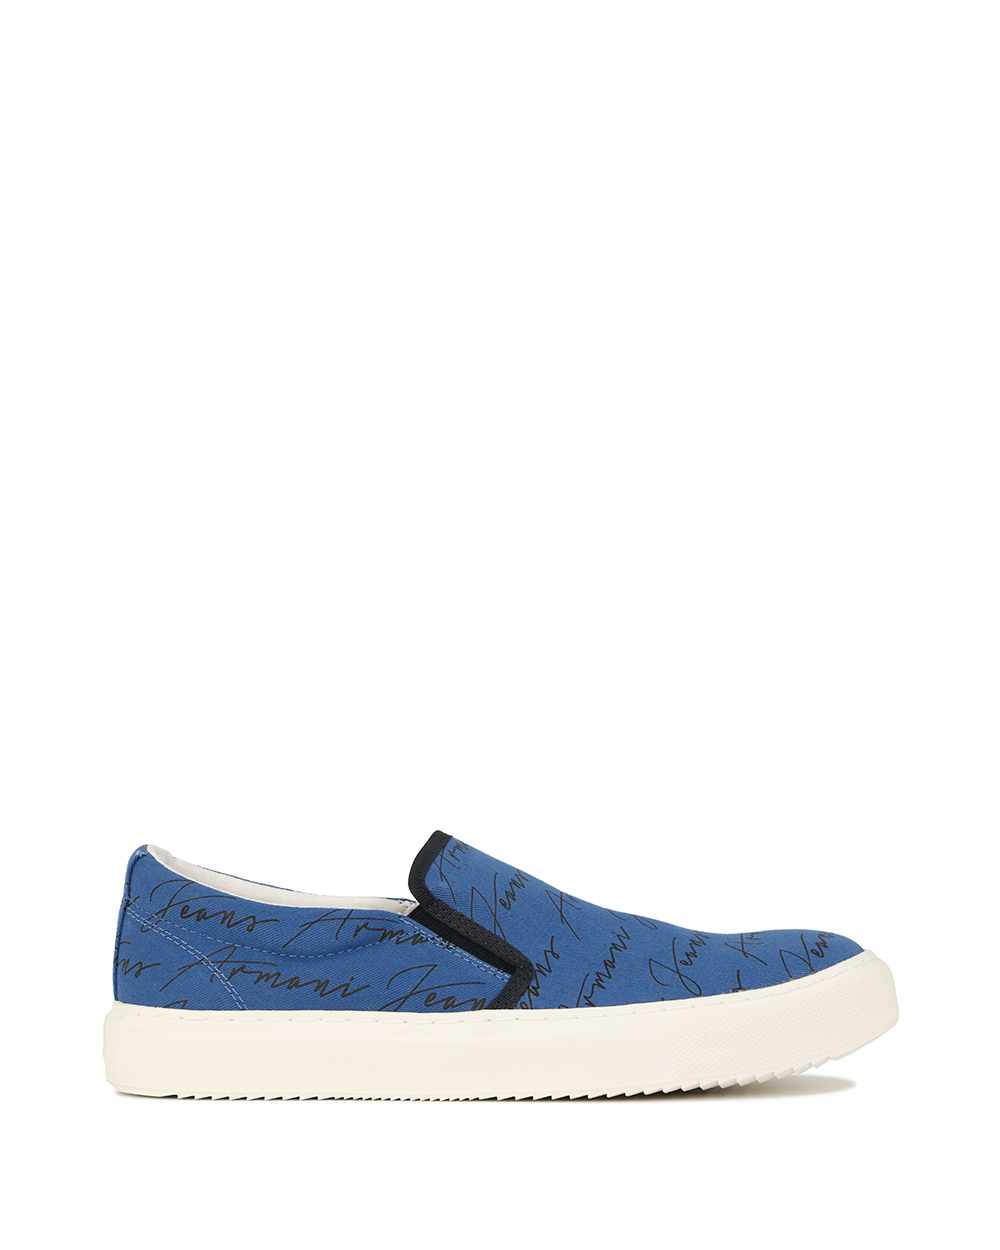 AJ Patterned Slip-on